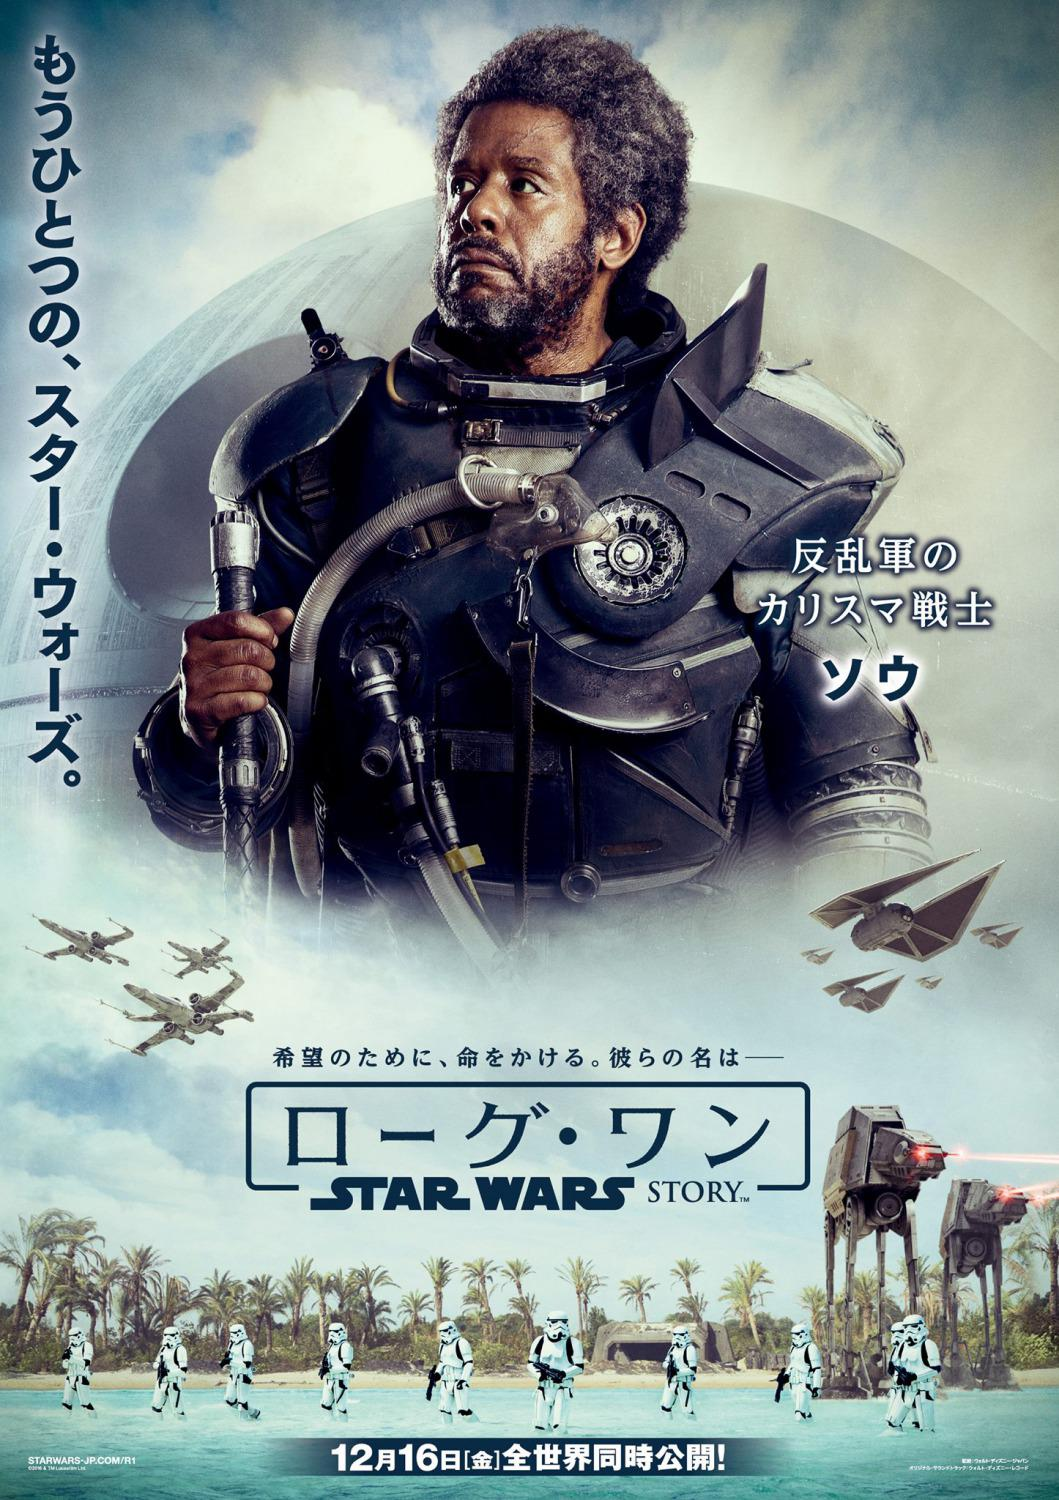 Star Wars - Rogue One a Star Wars story - Forest Whitaker - Saw Gerrera